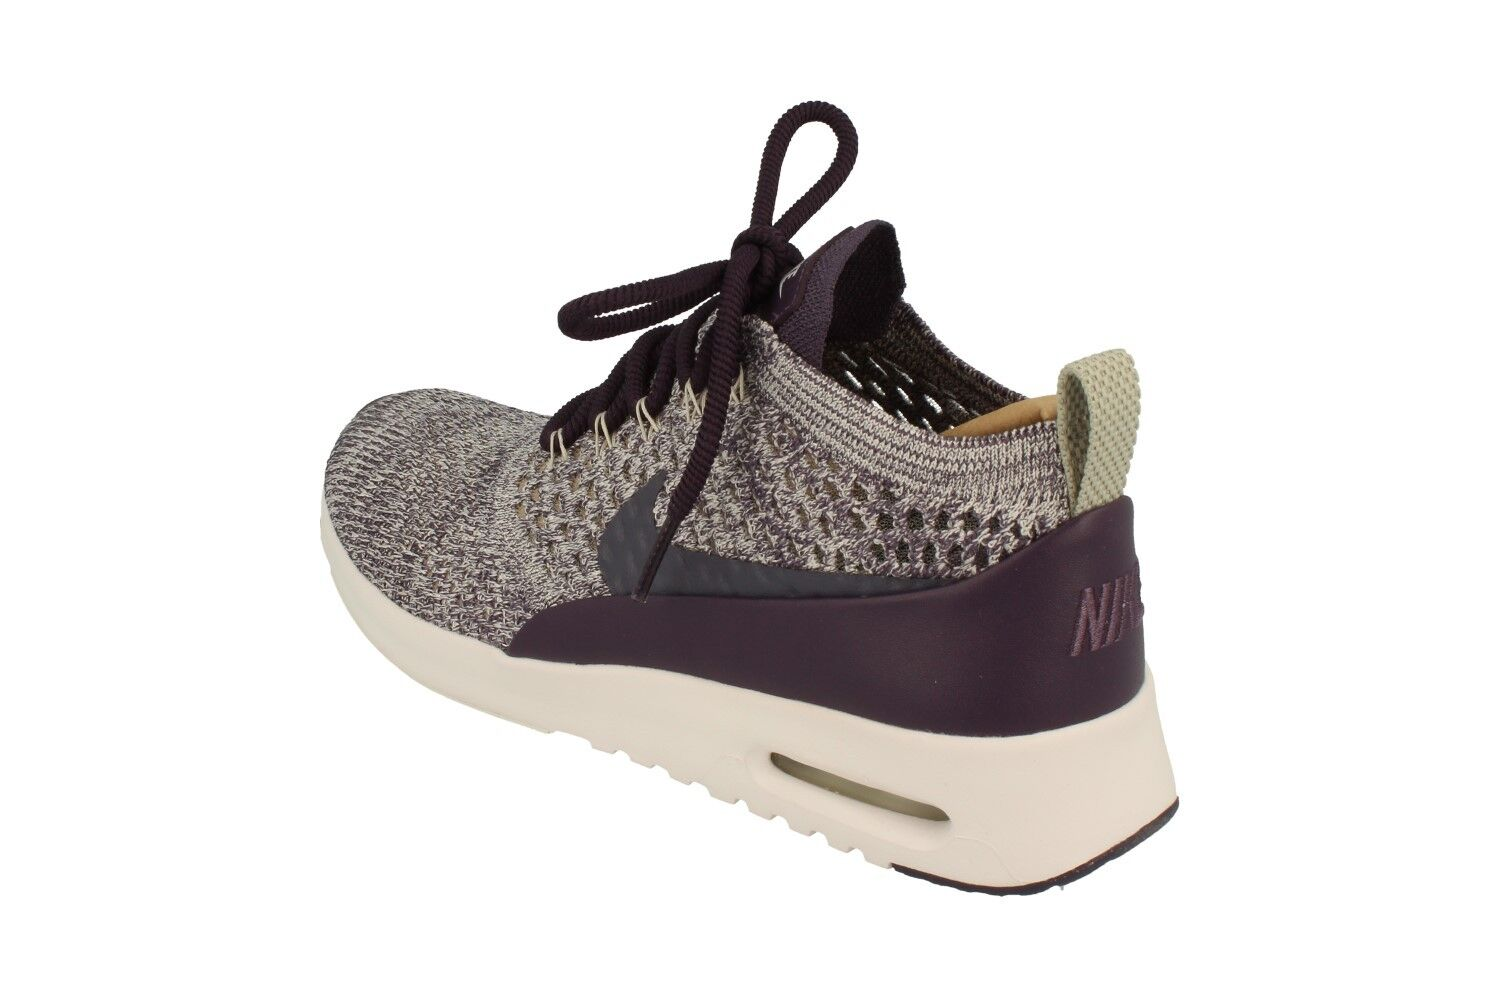 Nike Air Max Thea Thea Max Ultra Fk Damenschuhe Running Trainers 881175 Sneakers Schuhes  500 7a7b51